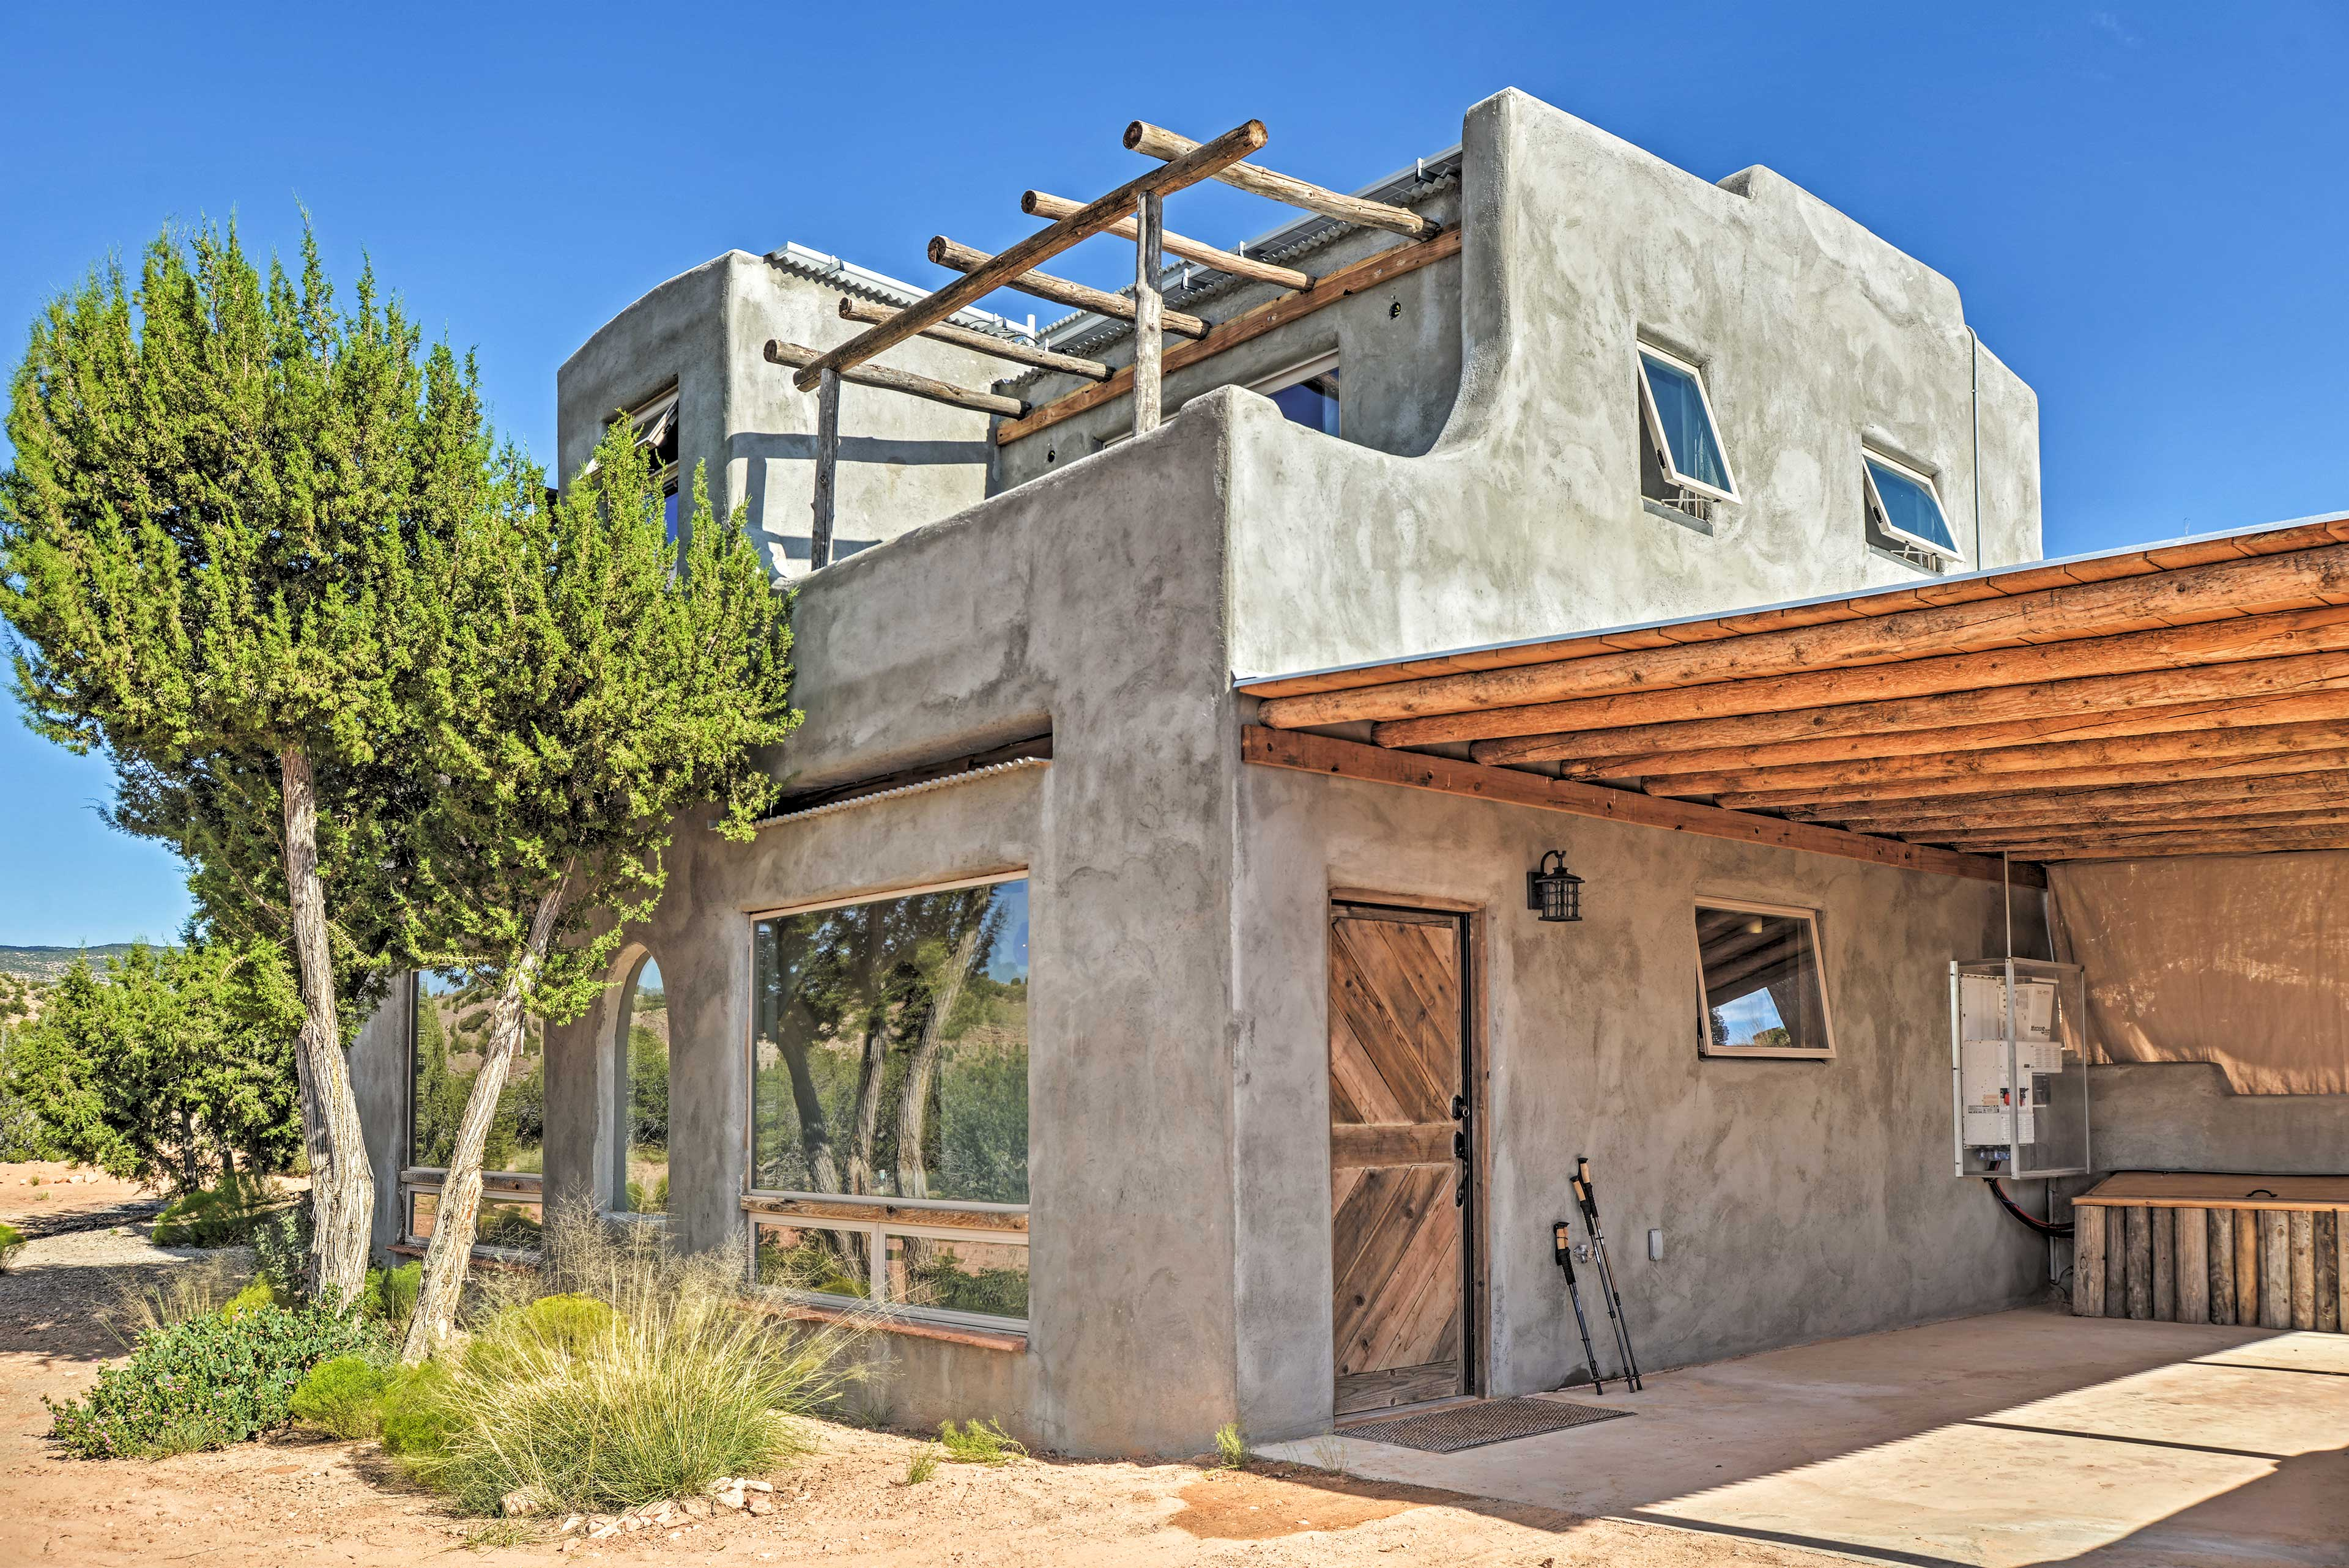 This vacation rental features a Southwestern-style exterior.